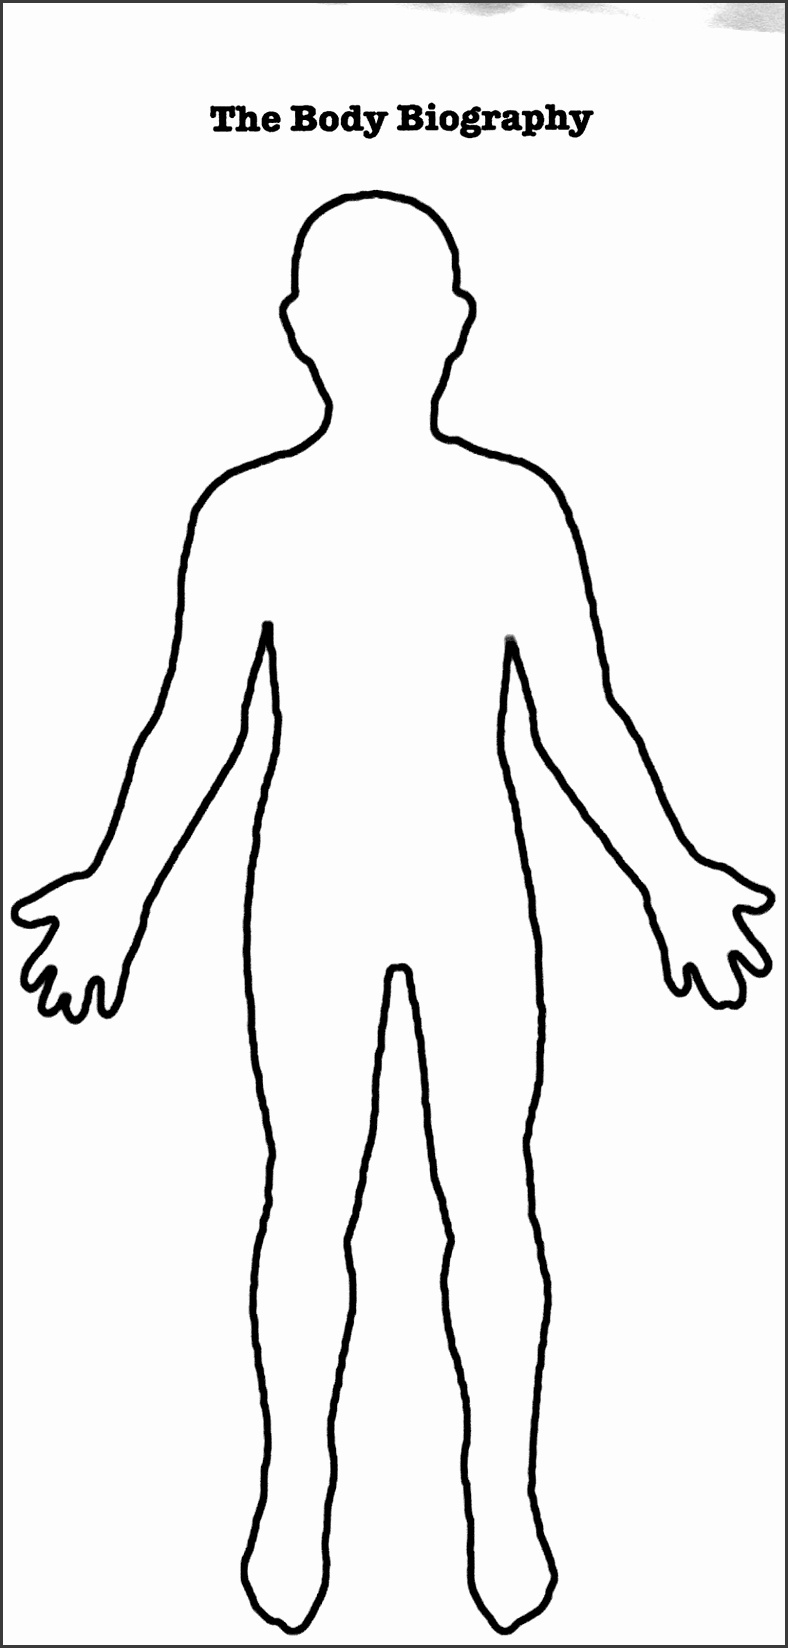 It's just a picture of Inventive Printable Human Body Outline Template Pdf